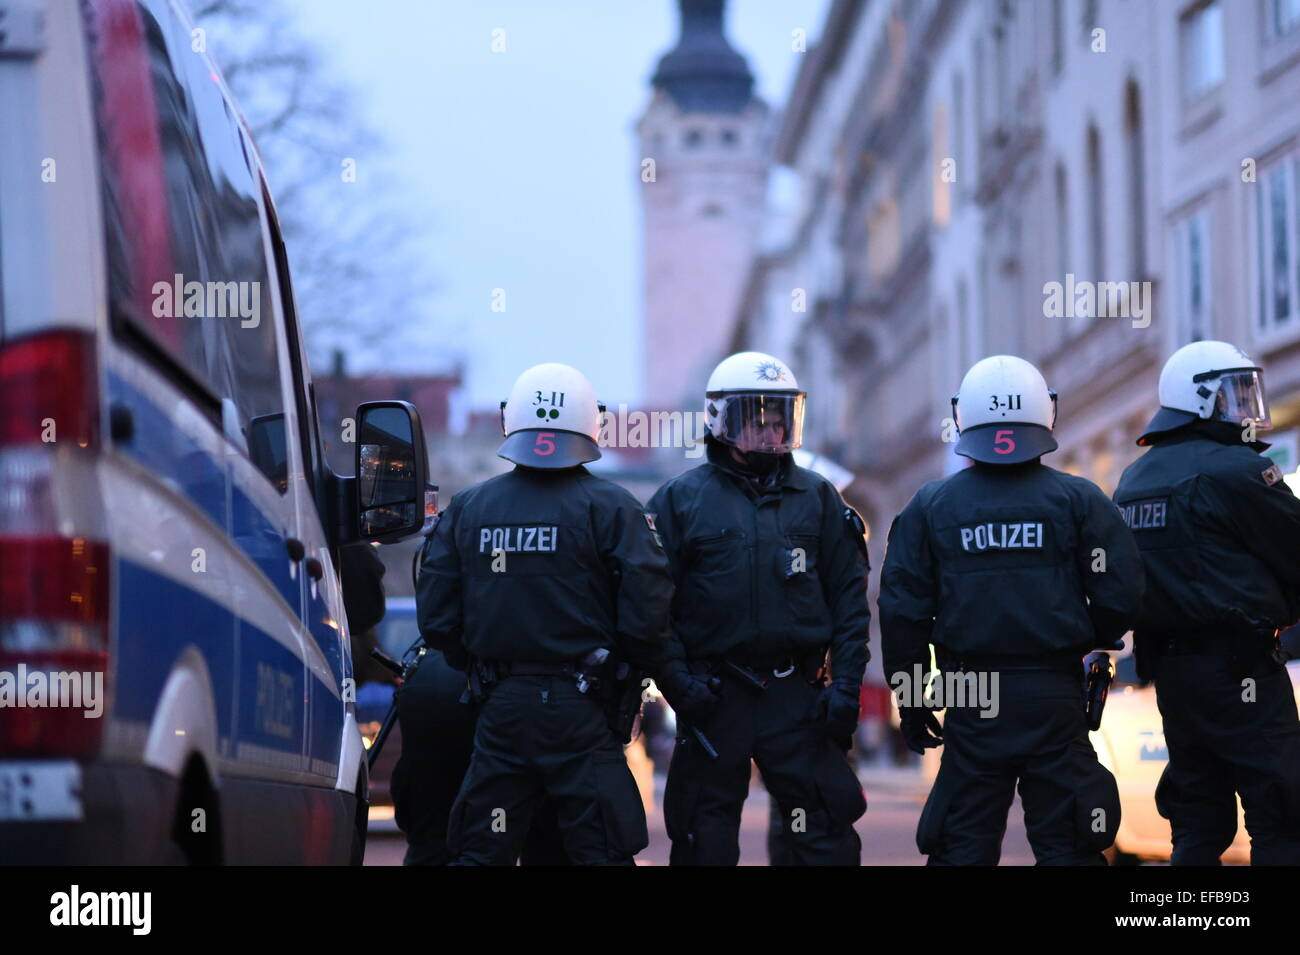 Leipzig, Germany. 30th Jan, 2015. Police men surveil a demonstration against the islam critical movement 'Legida' - Stock Image